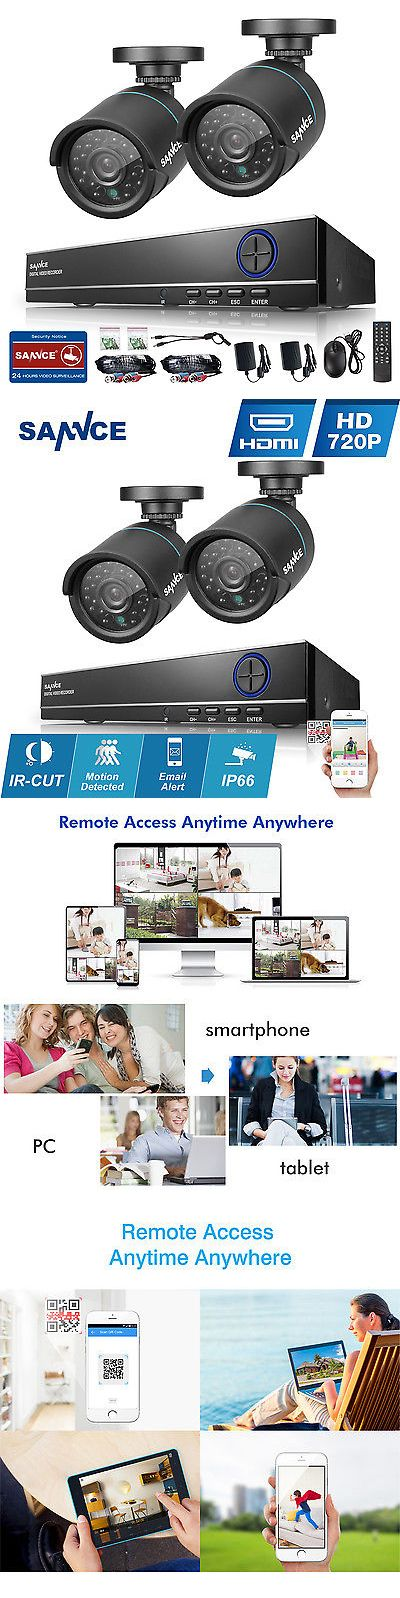 Surveillance Security Systems: Sannce 720P Hdmi 4Ch Dvr 1500Tvl Outdoor Day Night Cctv Security Camera System -> BUY IT NOW ONLY: $58.99 on eBay!